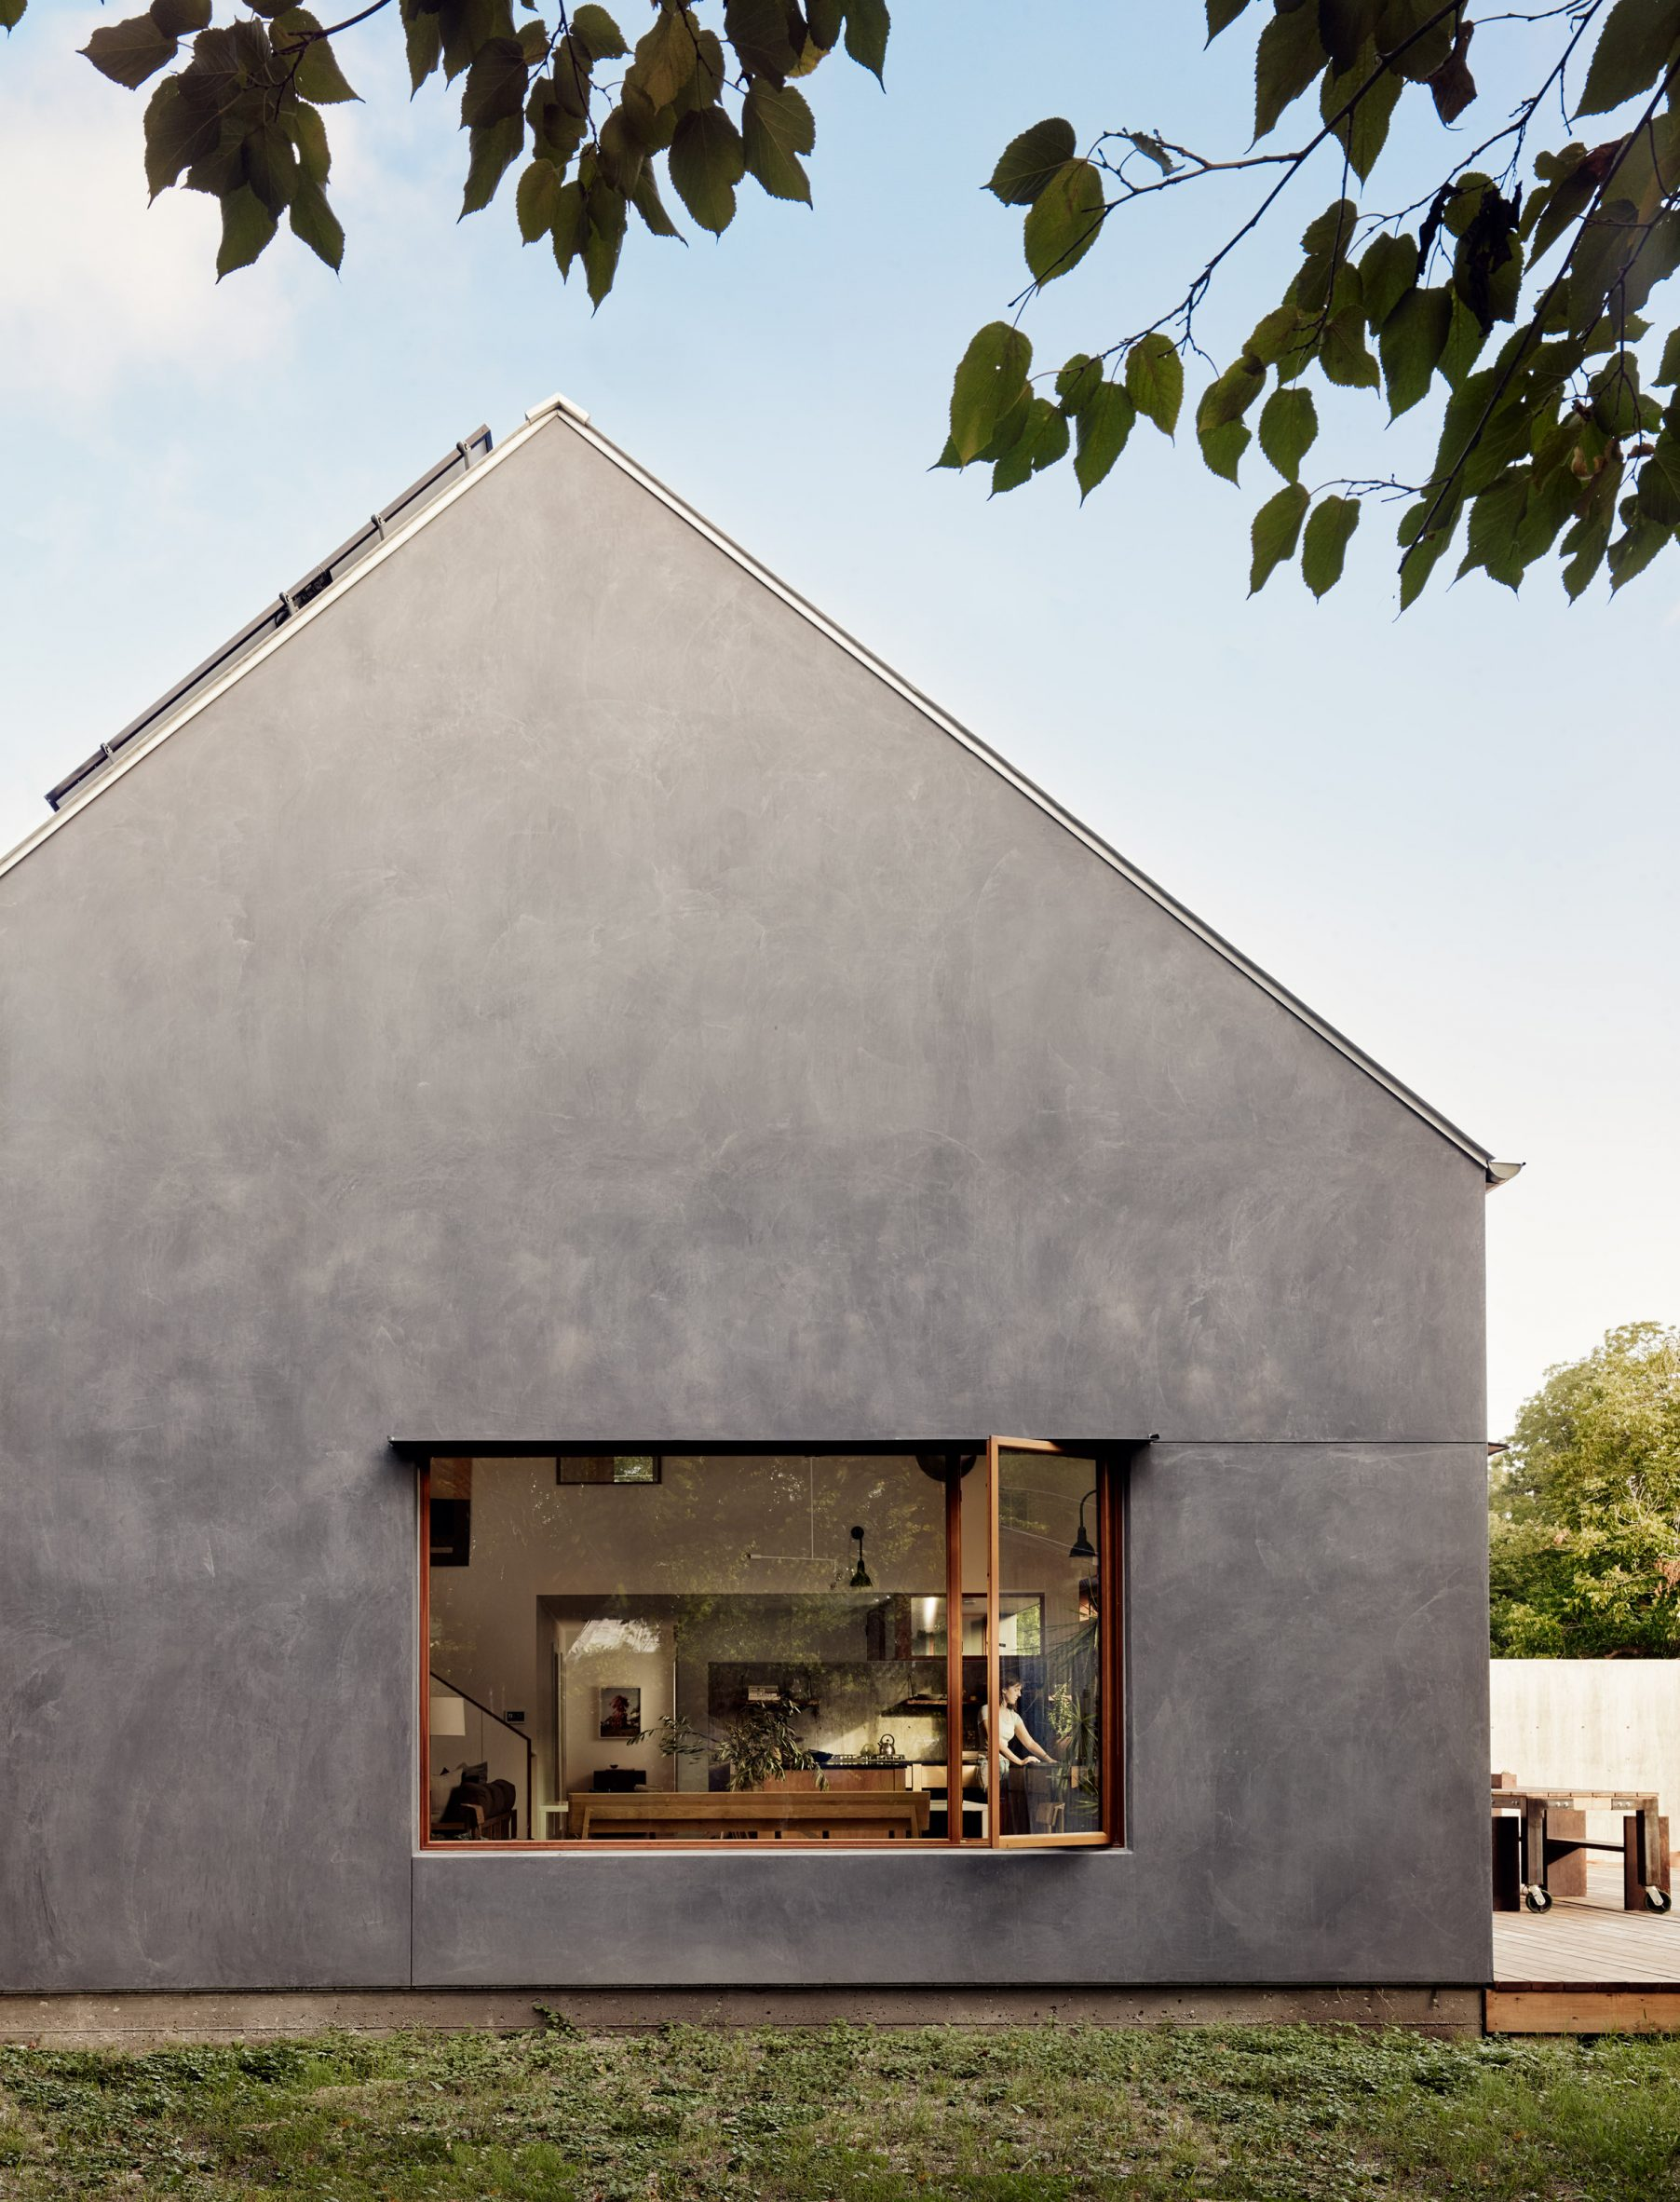 The home has a gabled roof